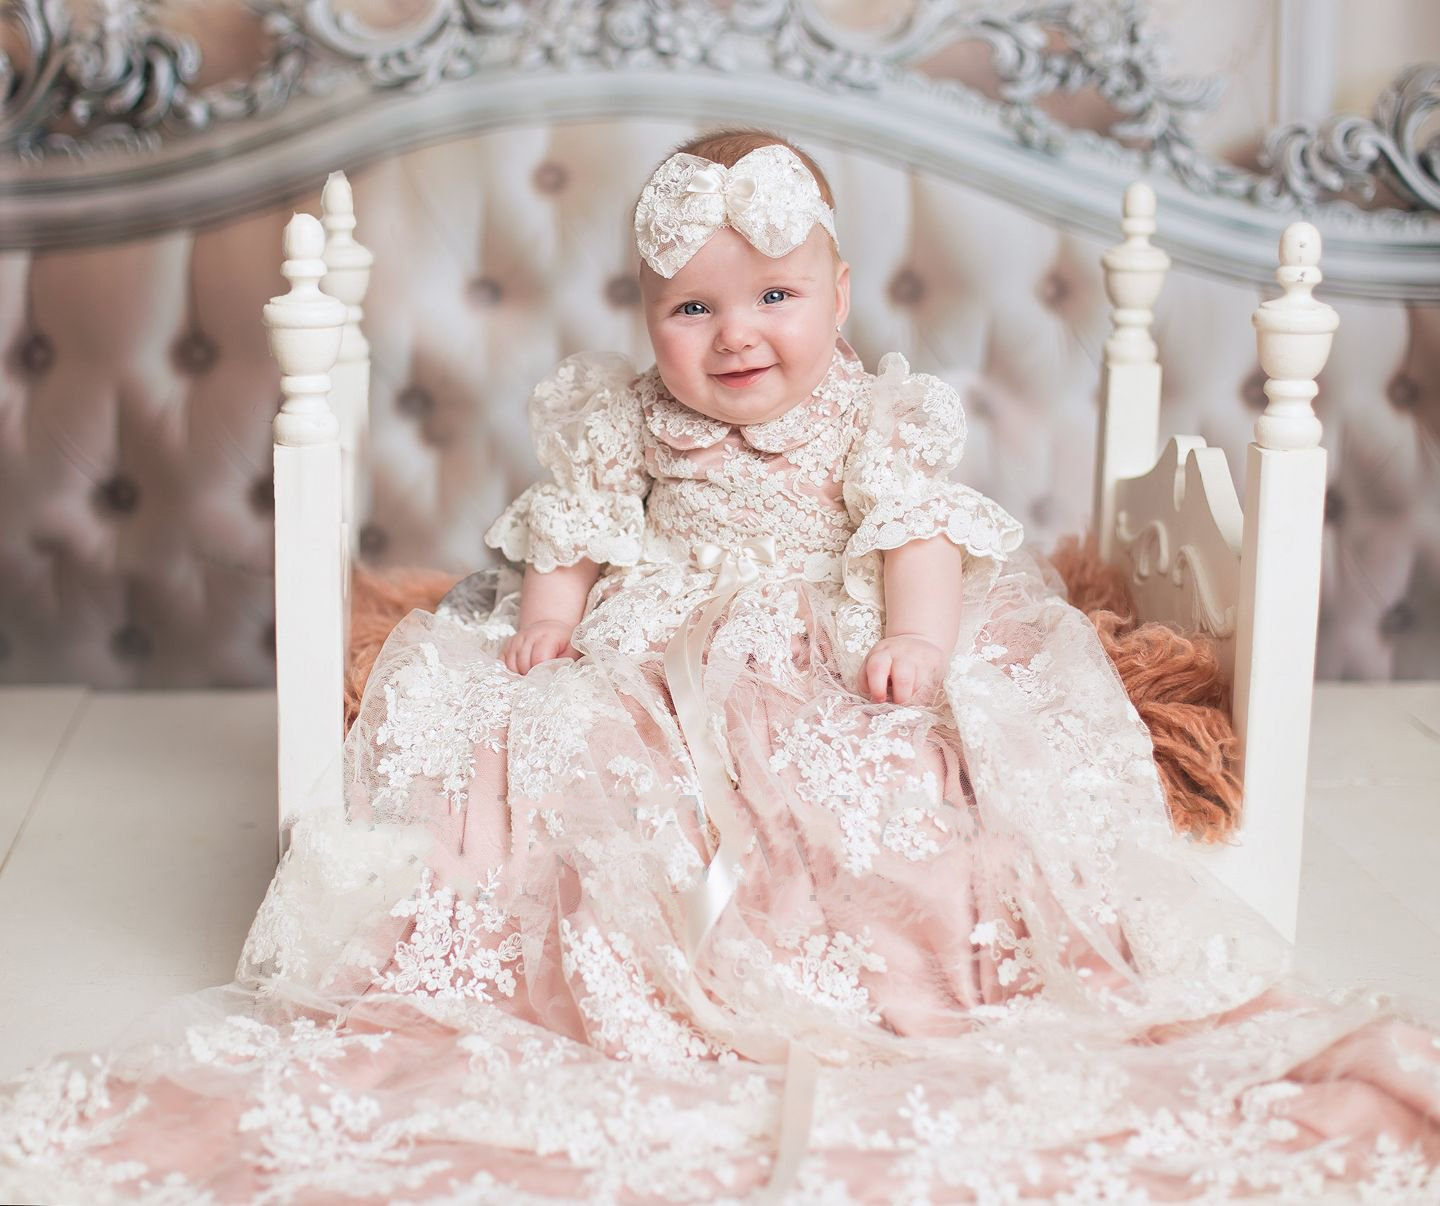 c8c55e414 Couture Christening gowns are the most gorgeous couture gowns you have ever  seen! They are absolutely beautiful and stands apart from the rest!